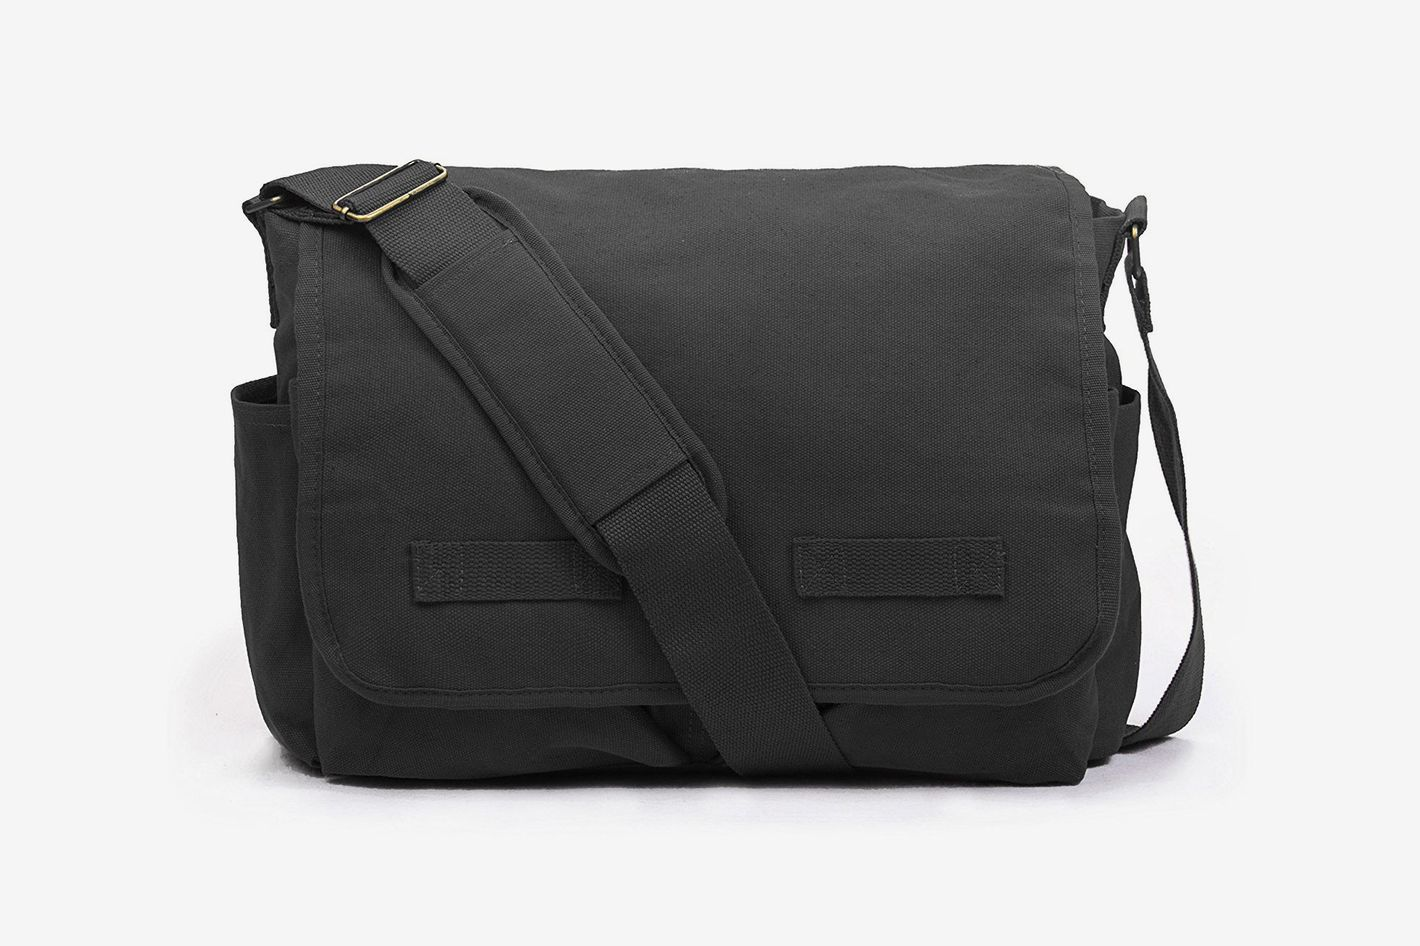 11 Best Messenger Bags for Men 2018